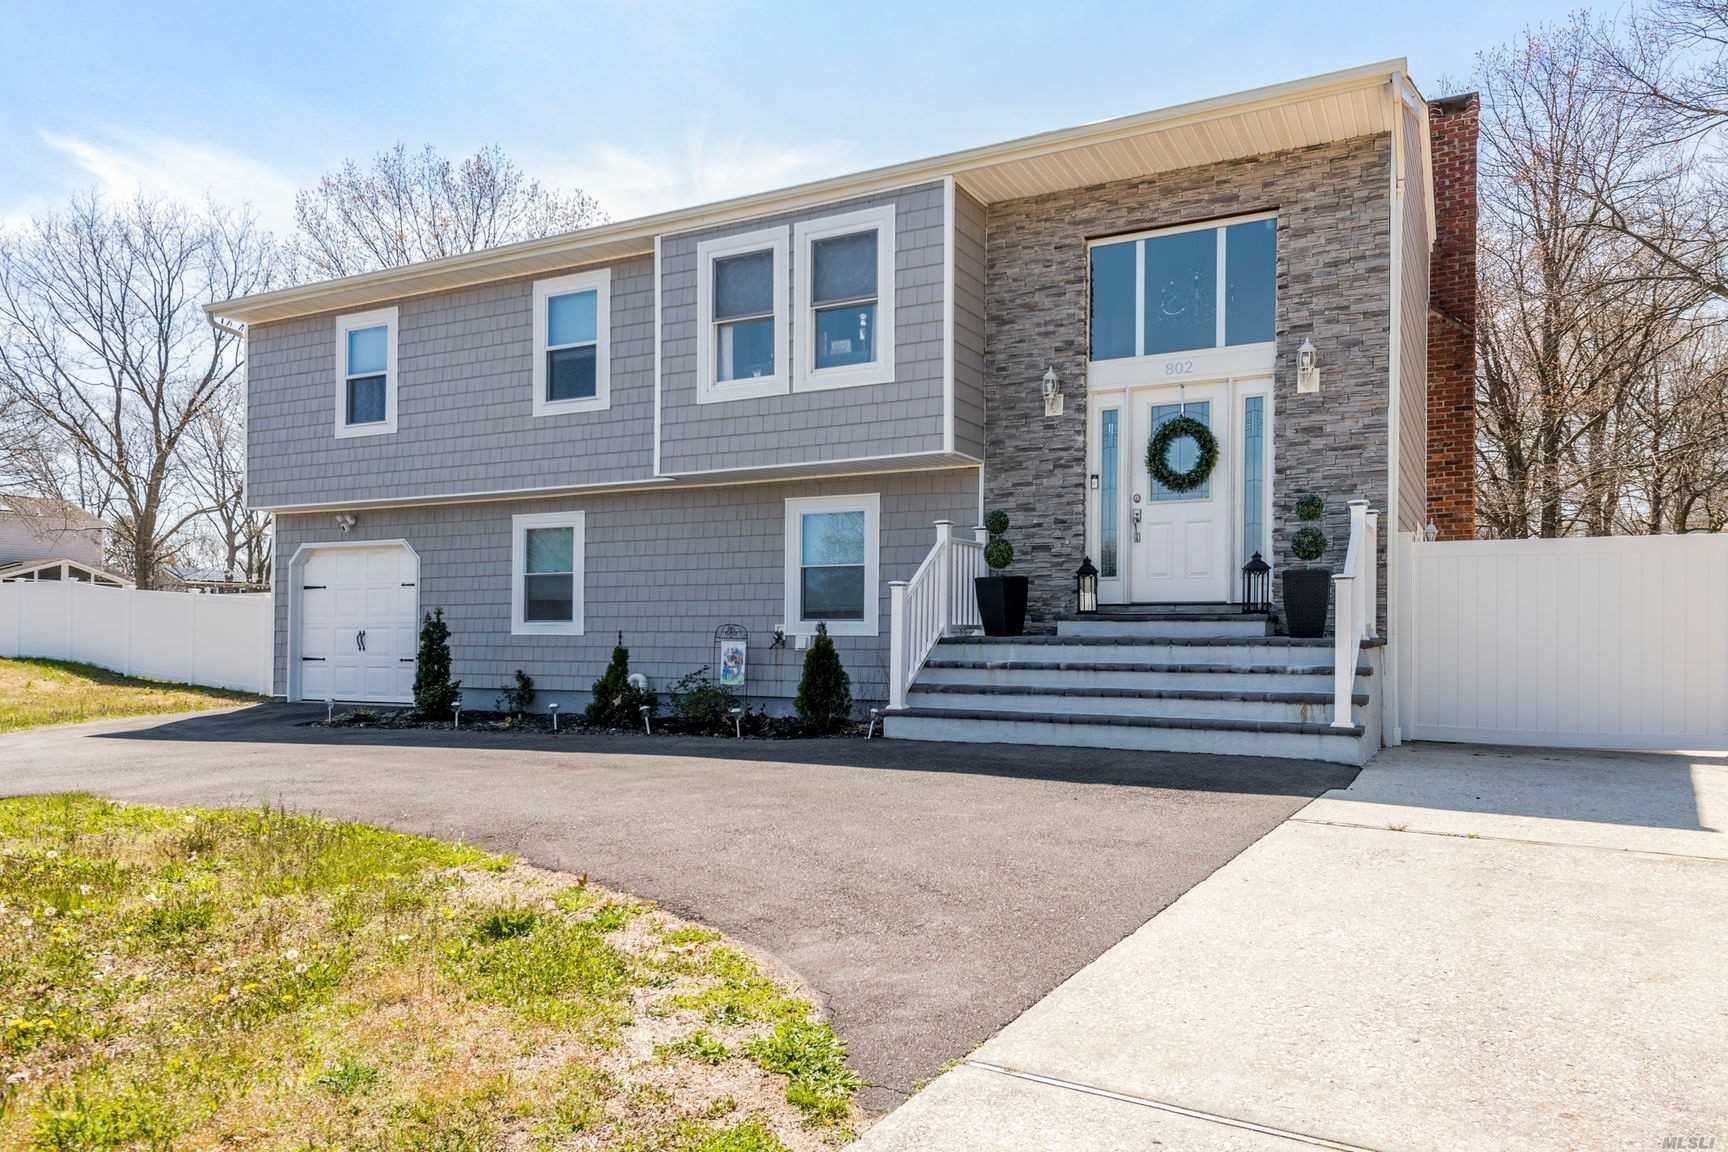 802 Old Town Rd, Selden, NY 11784 - MLS#: 3212755